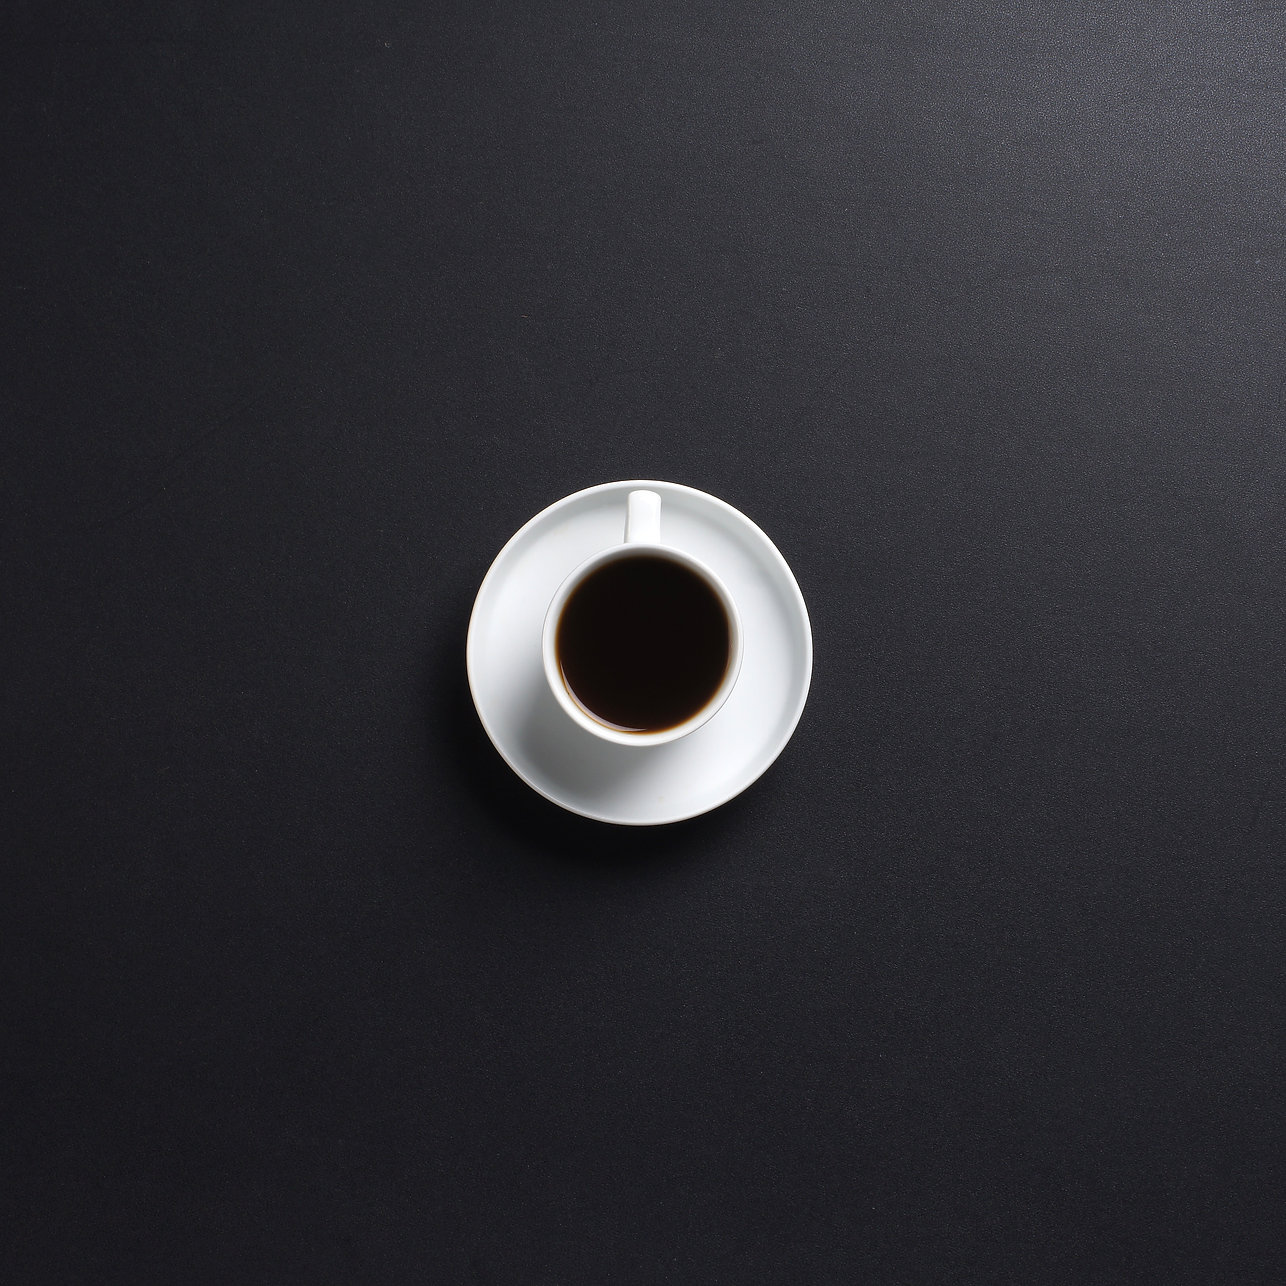 Cup of coffee over the black background.